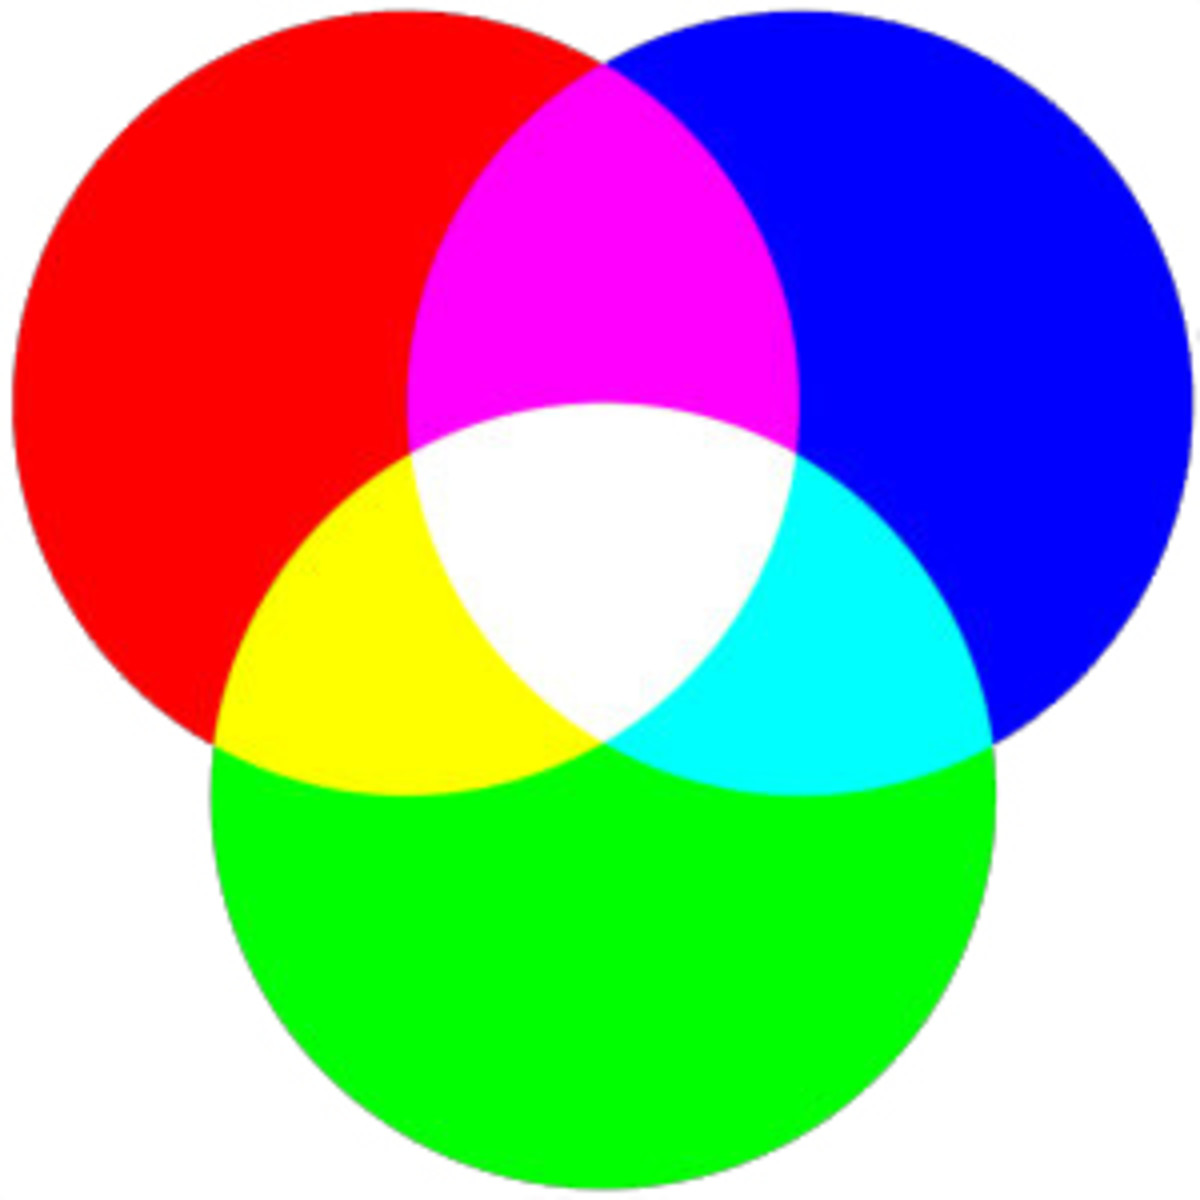 Three beams of the primary colours of red, green and blue light, and how the combining of red and green light creates yellow.